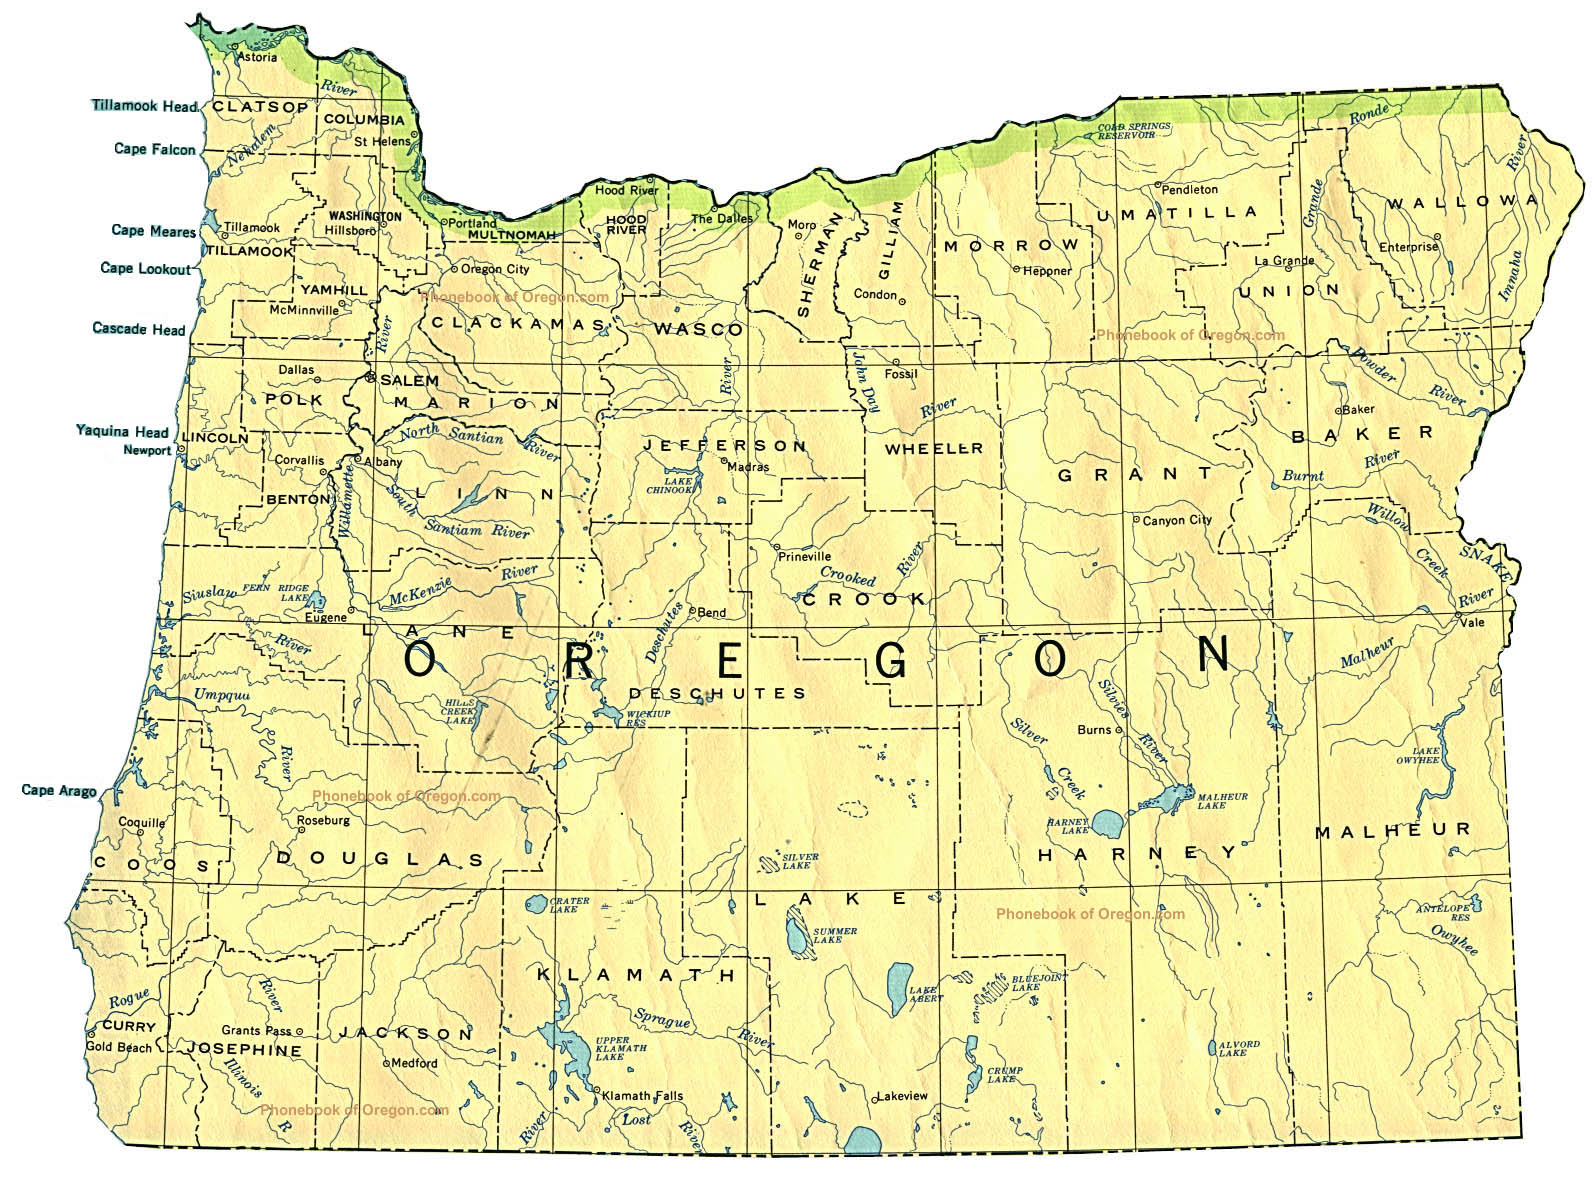 Map Of Oregon By Phonebook Of Oregoncom - Mapoforegon